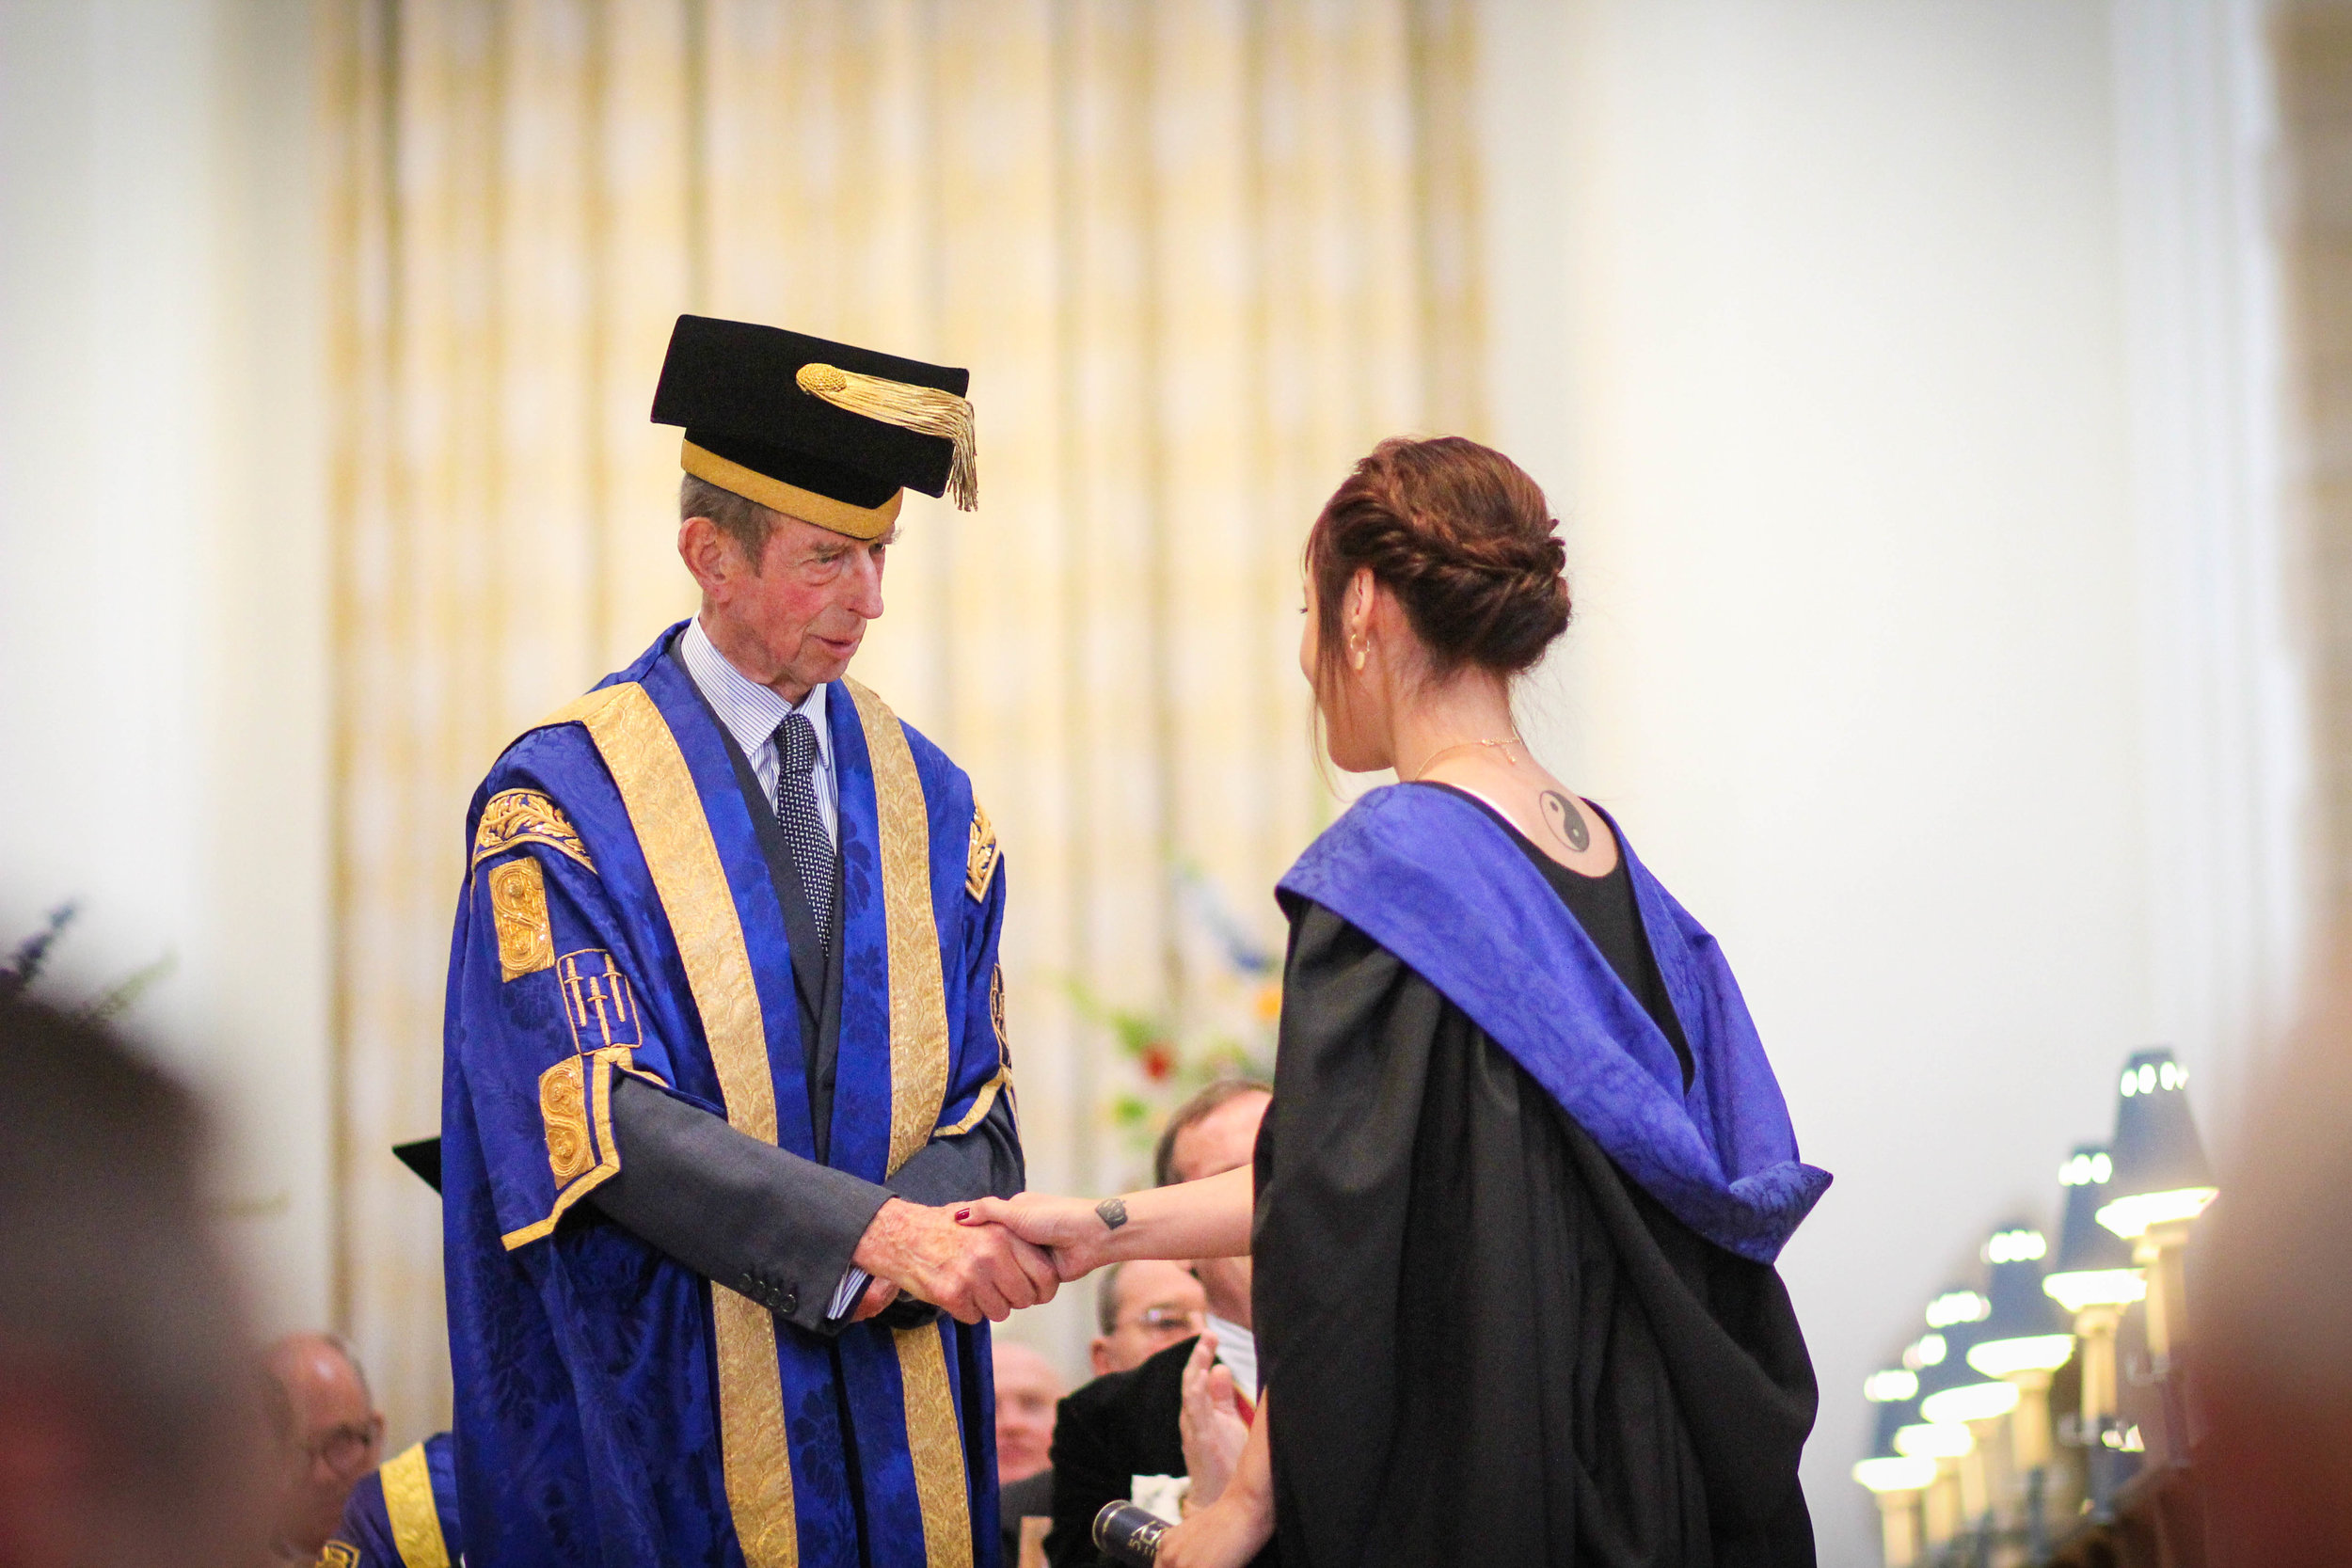 Shaking hands with HRH Duke of Kent